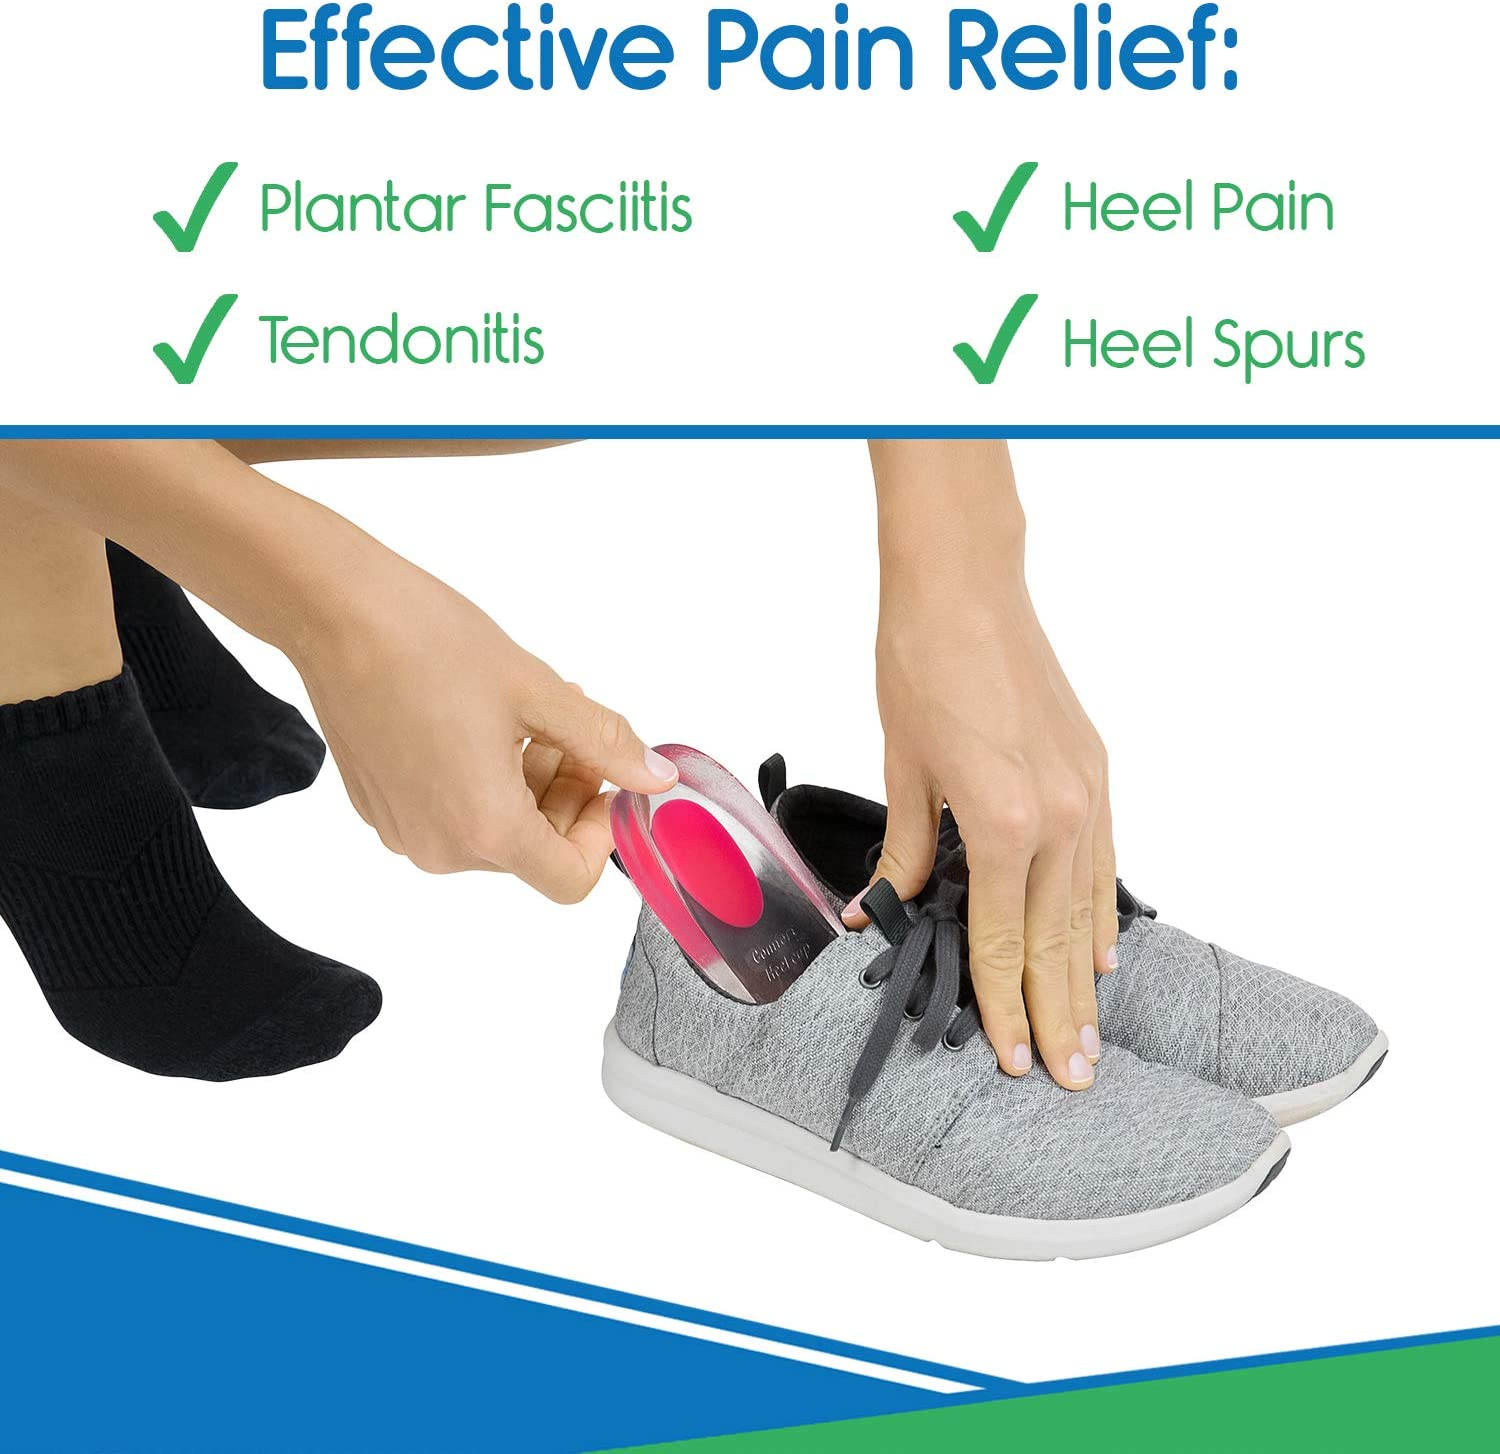 ViveSole Silicone Gel Heel Cups - Shoe Inserts for Plantar Fasciitis, Sore Heel, Bone Spur & Achilles Pain Relief Protectors - Foot Comfort Pads - Support (1 Pair, US Women's (4.5-8.5)): Health & Personal Care